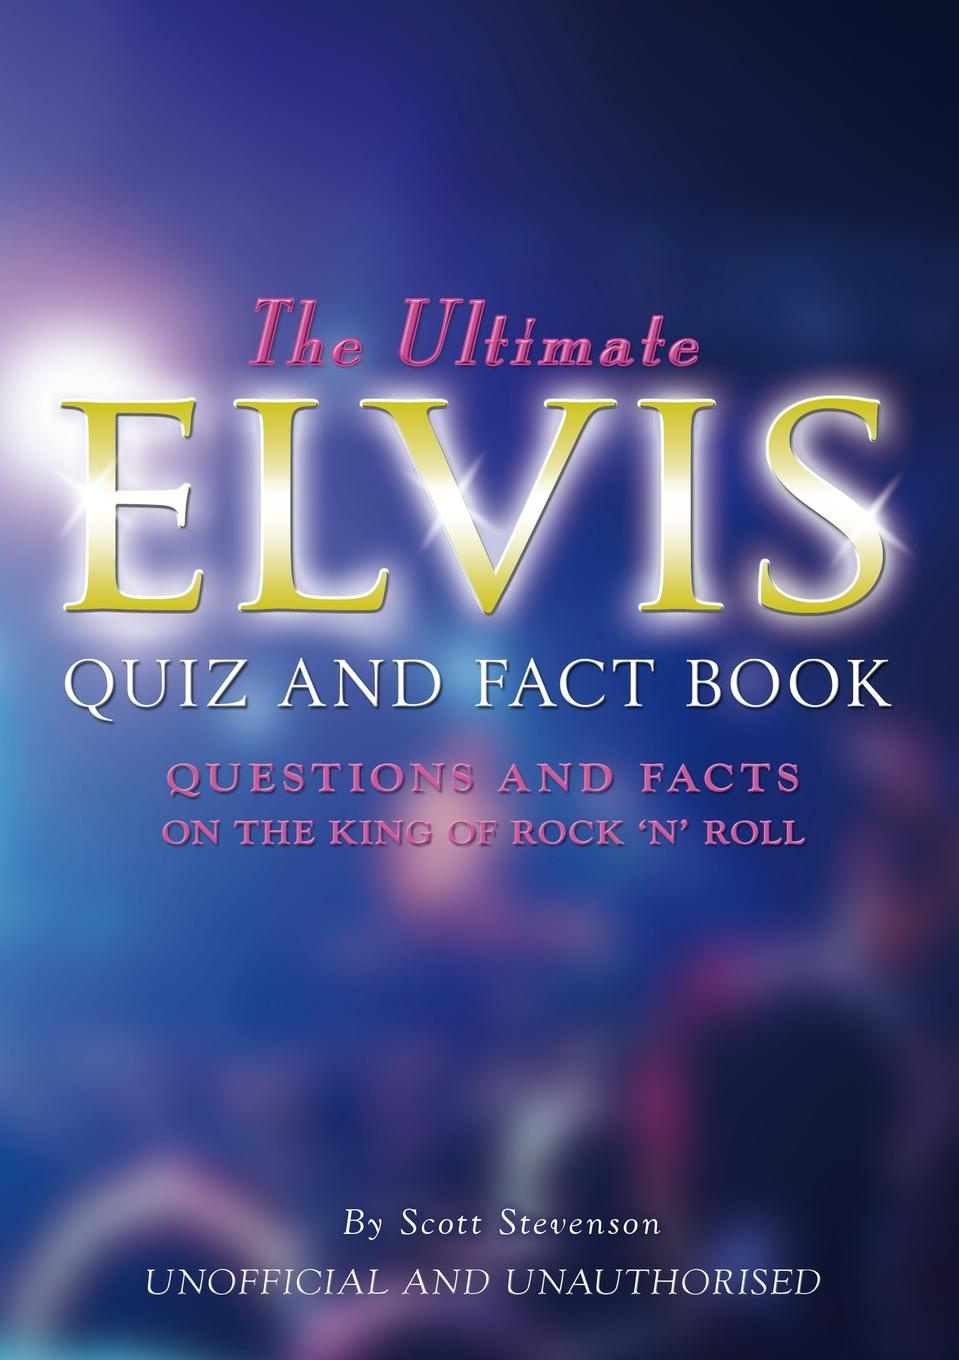 Scott Stevenson. The Ultimate Elvis Quiz and Fact Book